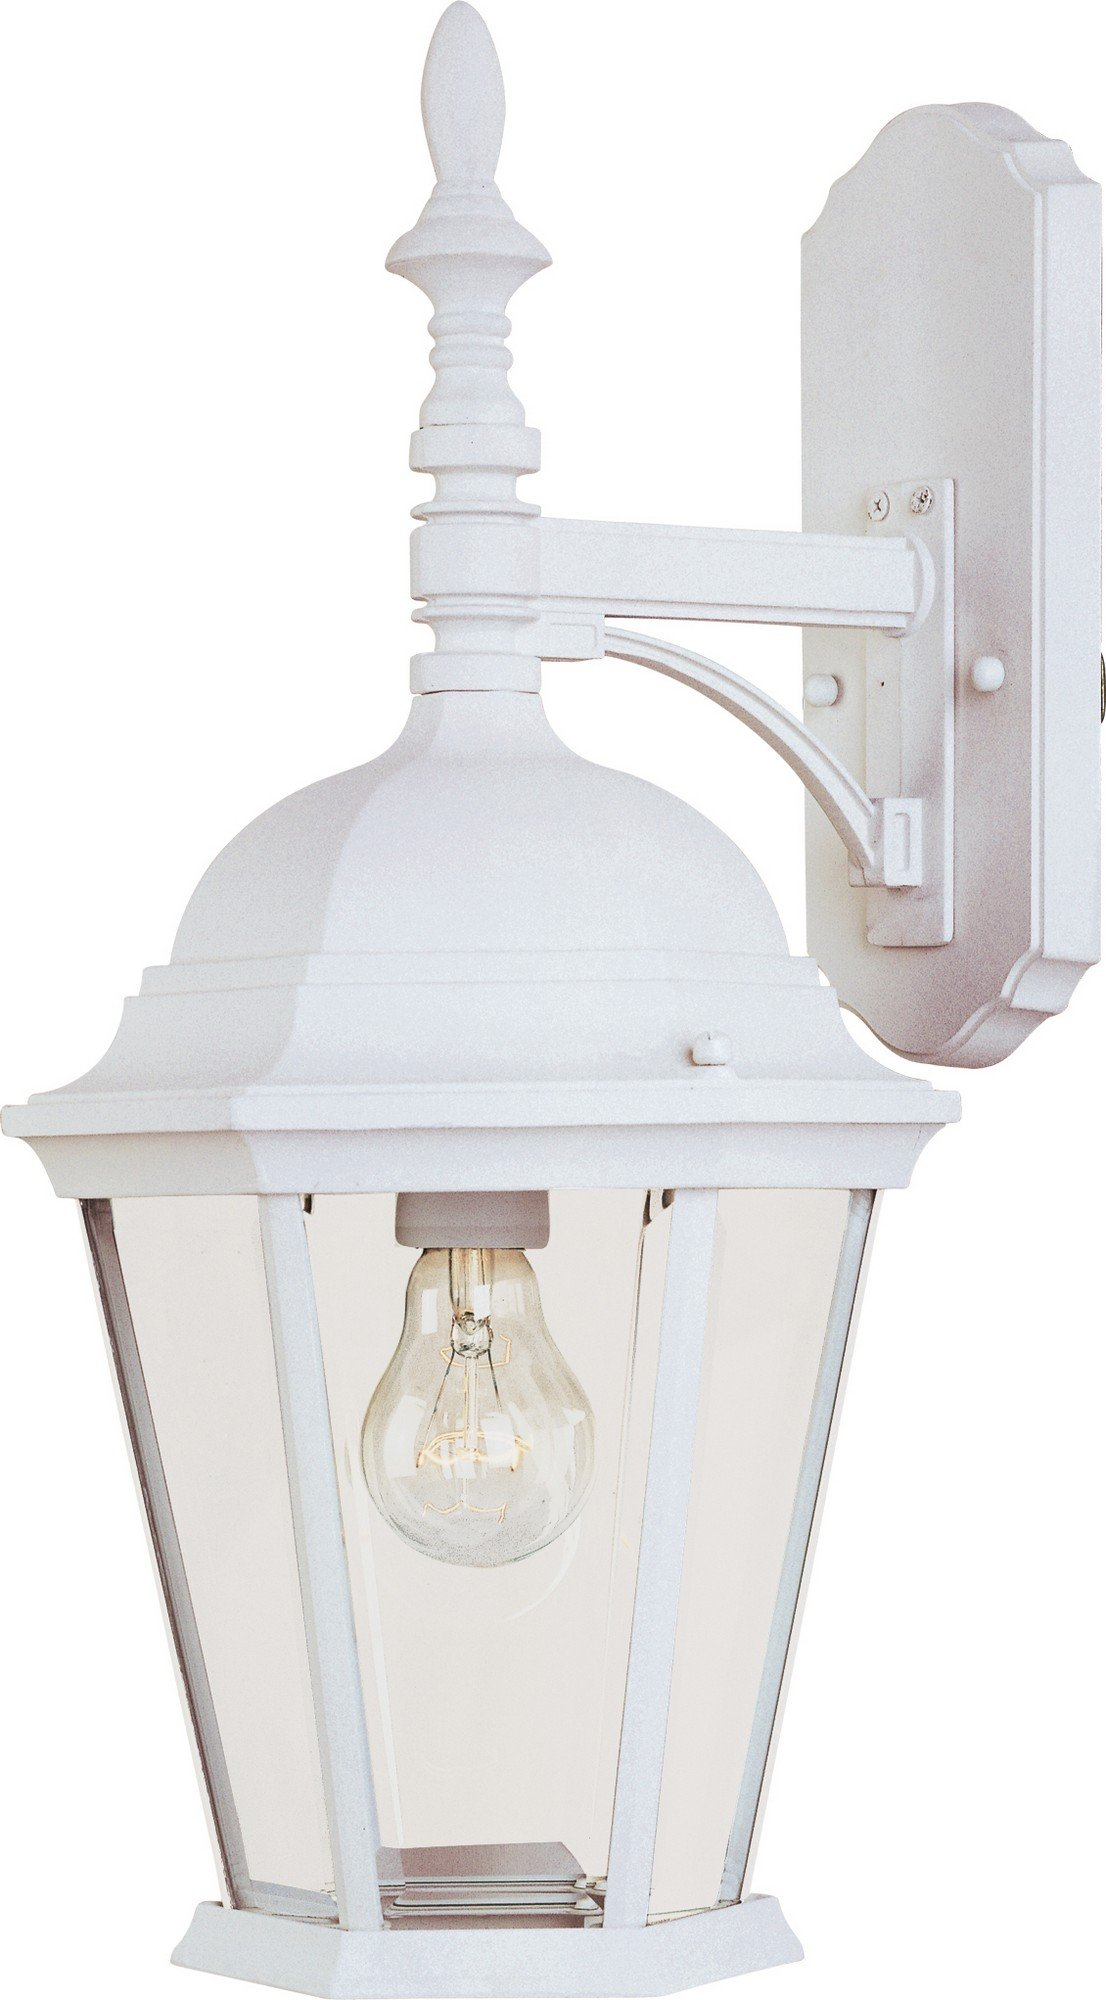 Maxim 1004WT Westlake Cast 1-Light Outdoor Wall Lantern, White Finish, Clear Glass, MB Incandescent Incandescent Bulb , 60W Max., Dry Safety Rating, Standard Dimmable, Glass Shade Material, Rated Lumens